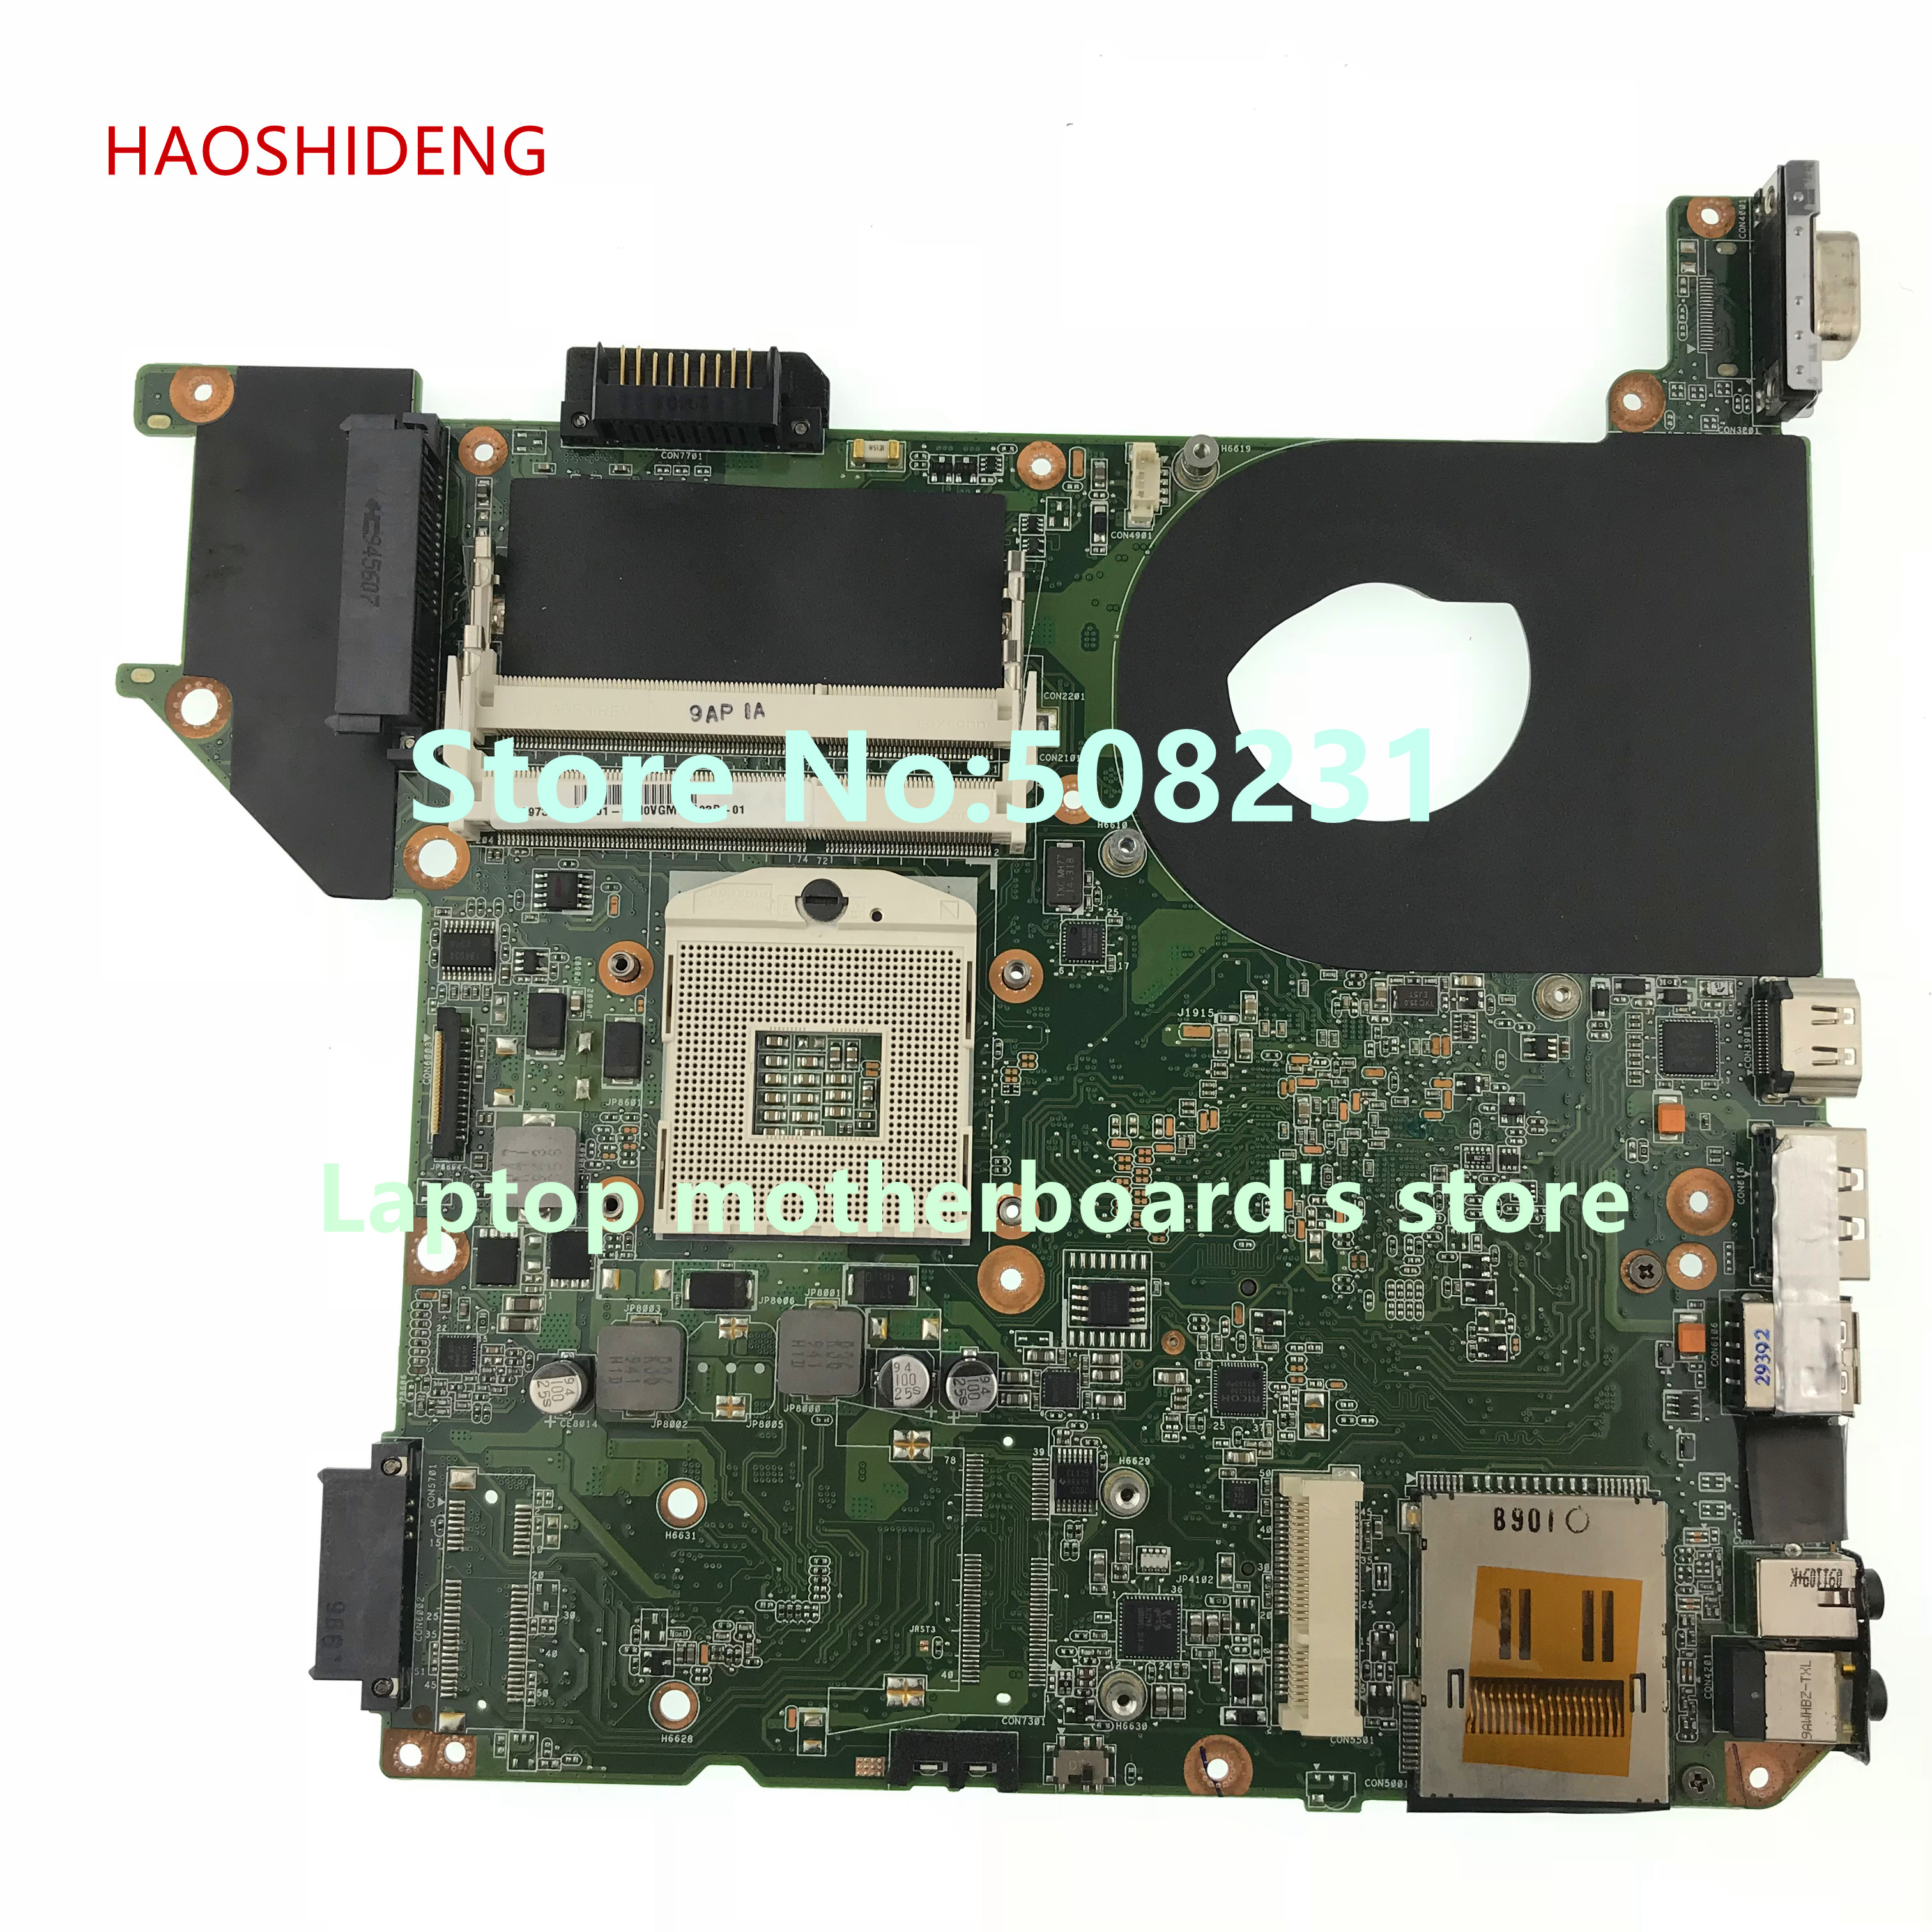 HAOSHIDENG H000023130 mainboard for Toshiba Satellite U500 U505 laptop motherboard All functions fully Tested free shipping for toshiba satellite p700 p740 p745 laptop motherboard k000123400 la 7101p all functions 100% fully tested